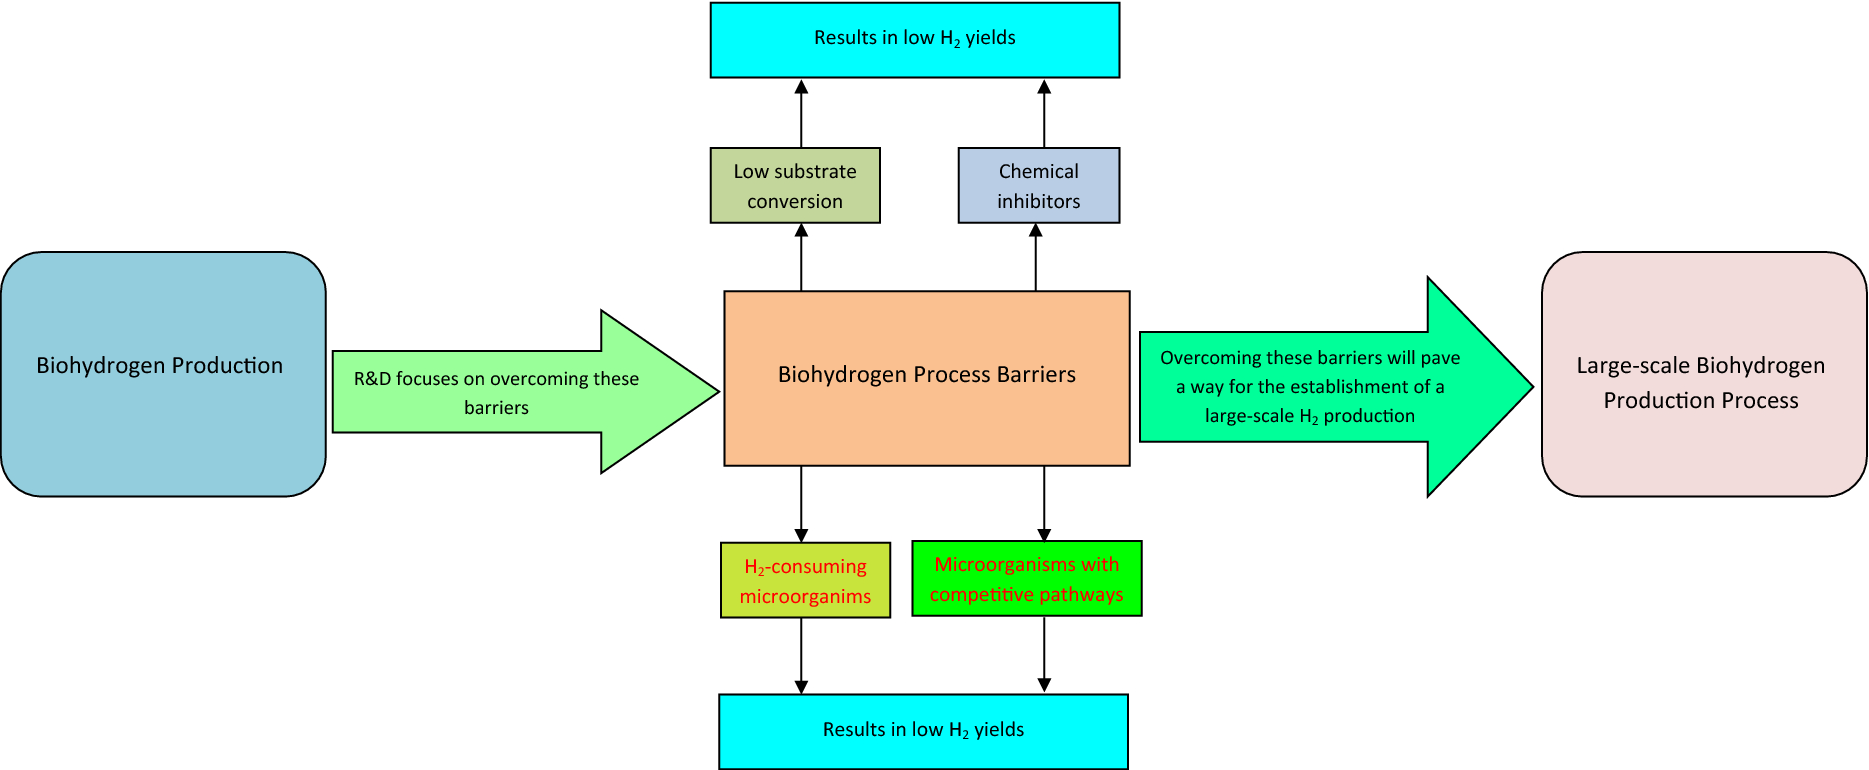 Integrated System Approach To Dark Fermentative Biohydrogen Process Flow Diagram Rice Mill Open Image In New Window